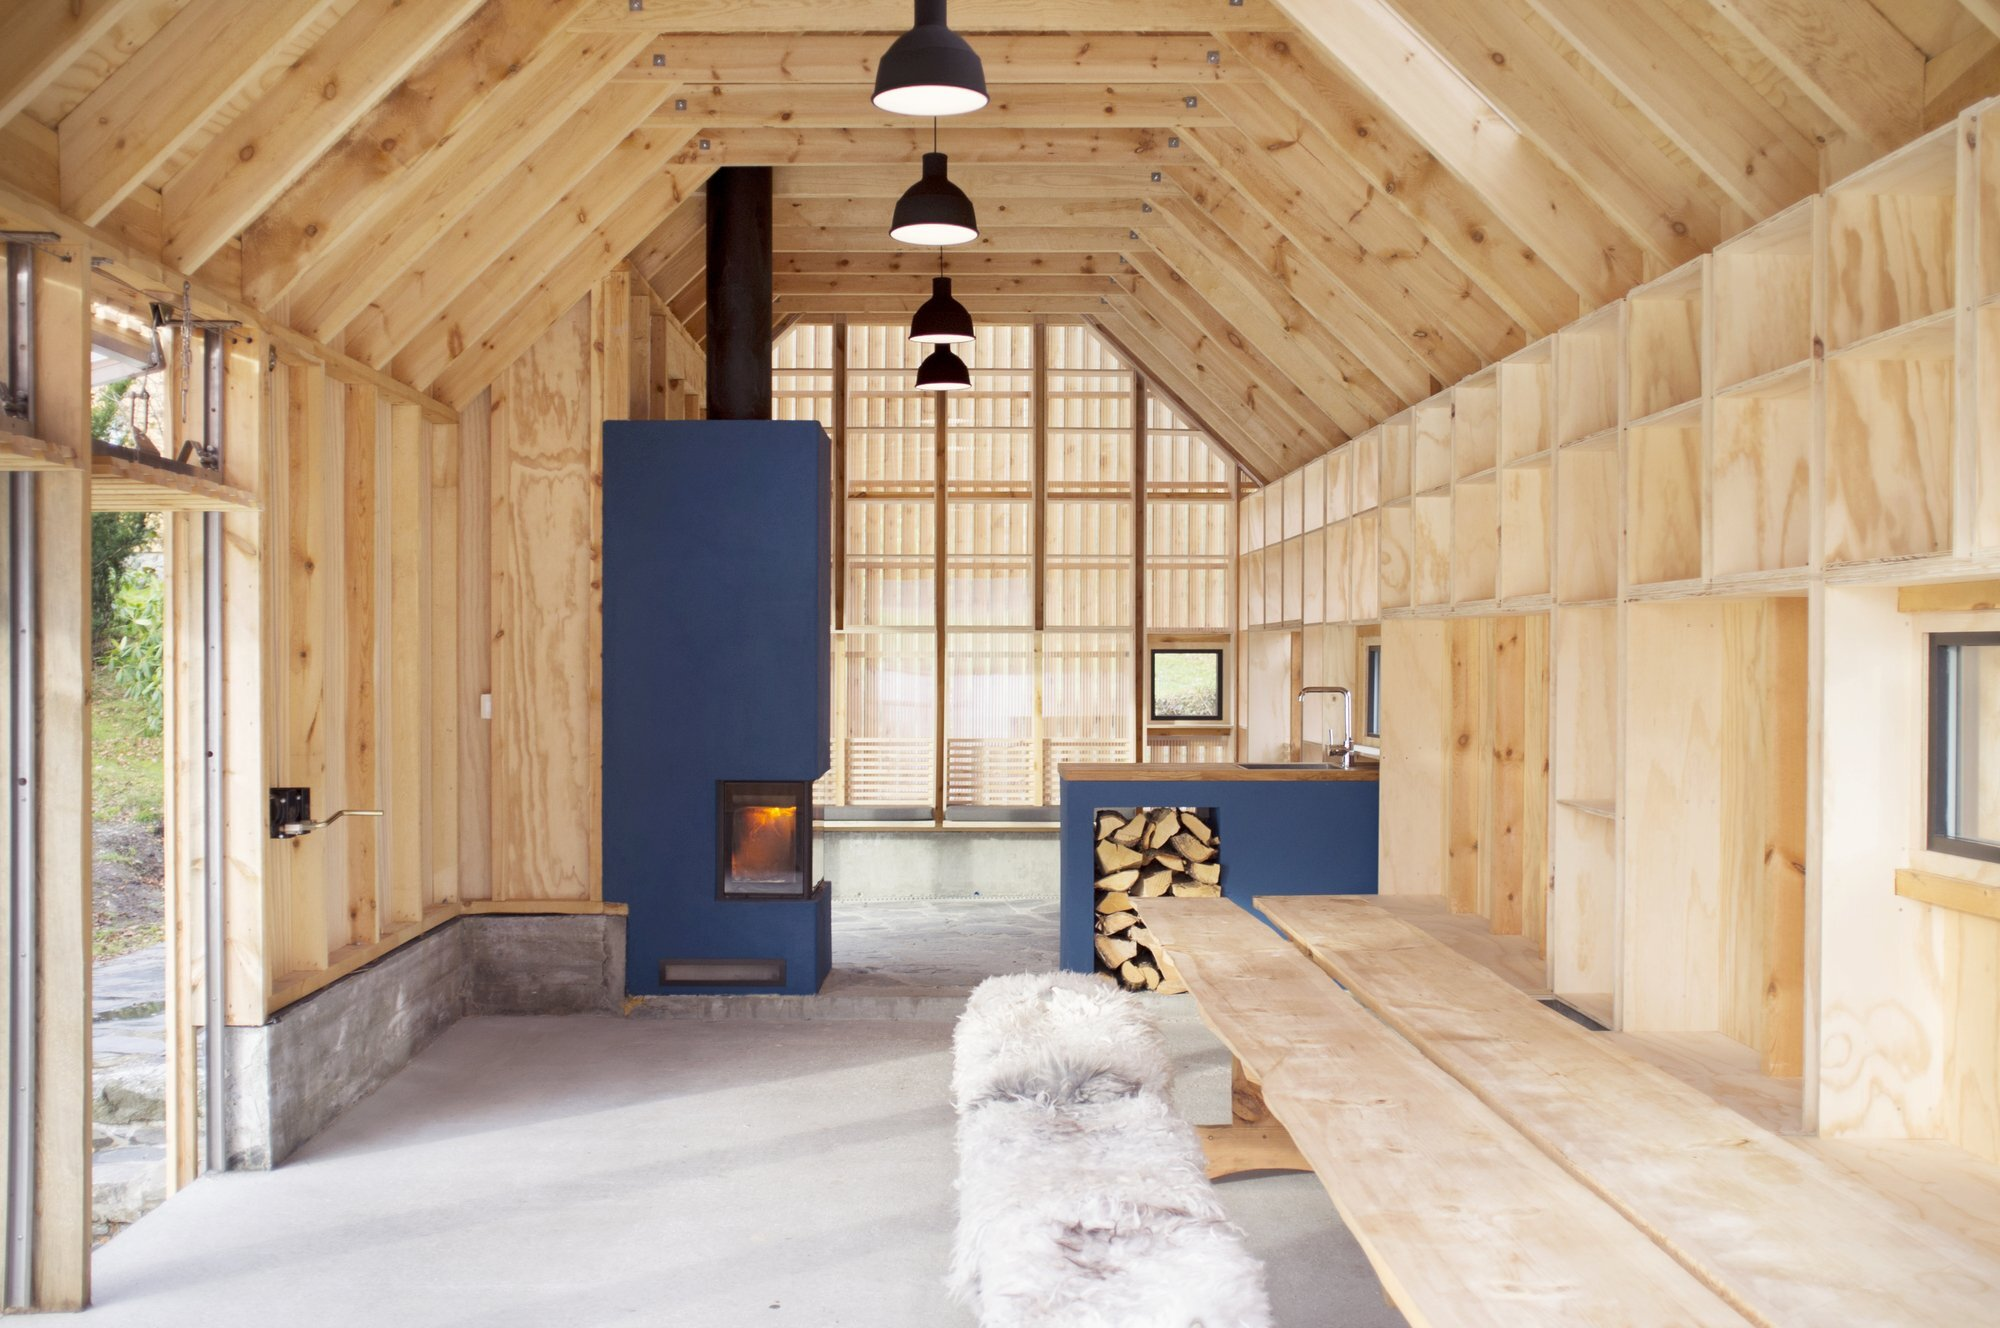 Naust V - Koreo Arkitekter + Kolab Arkitekter - Norway - Interior - Humble Homes